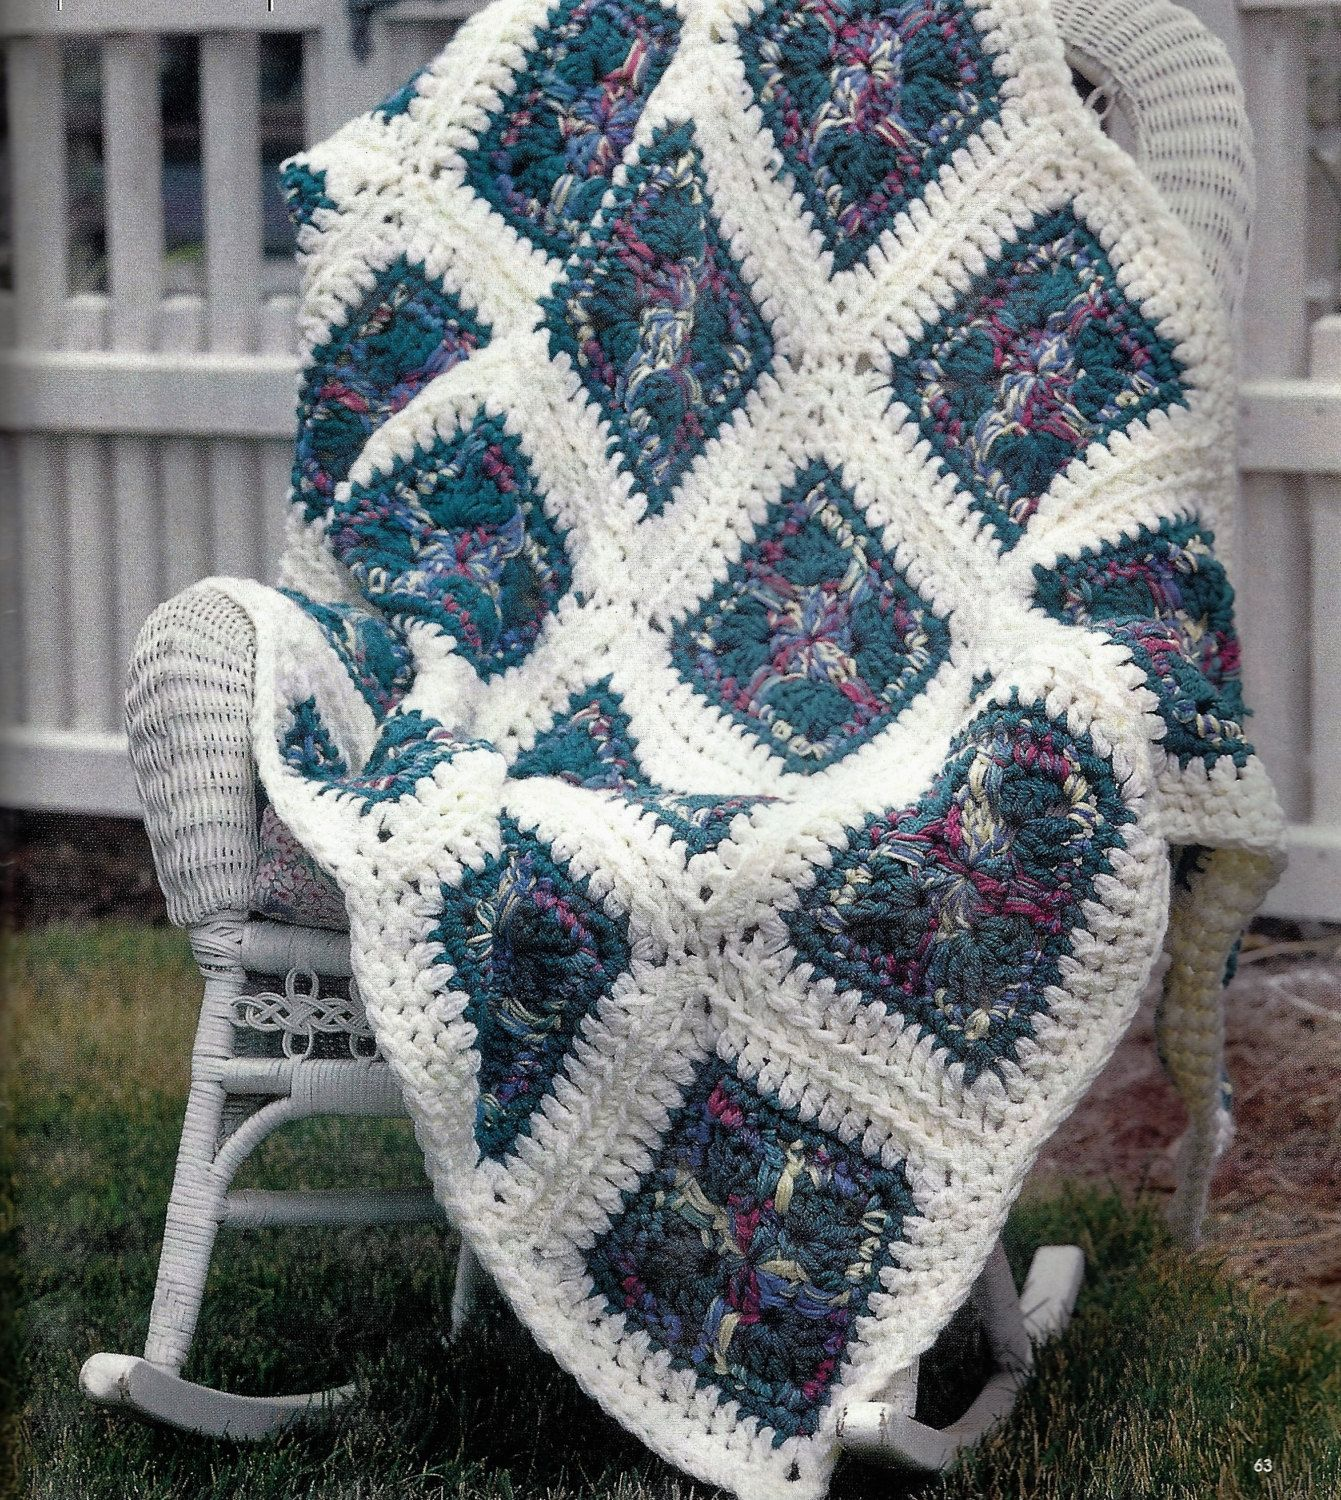 Crochet Q-16 hook Crossroads Granny Square Quick & Easy Afghan Patt ...